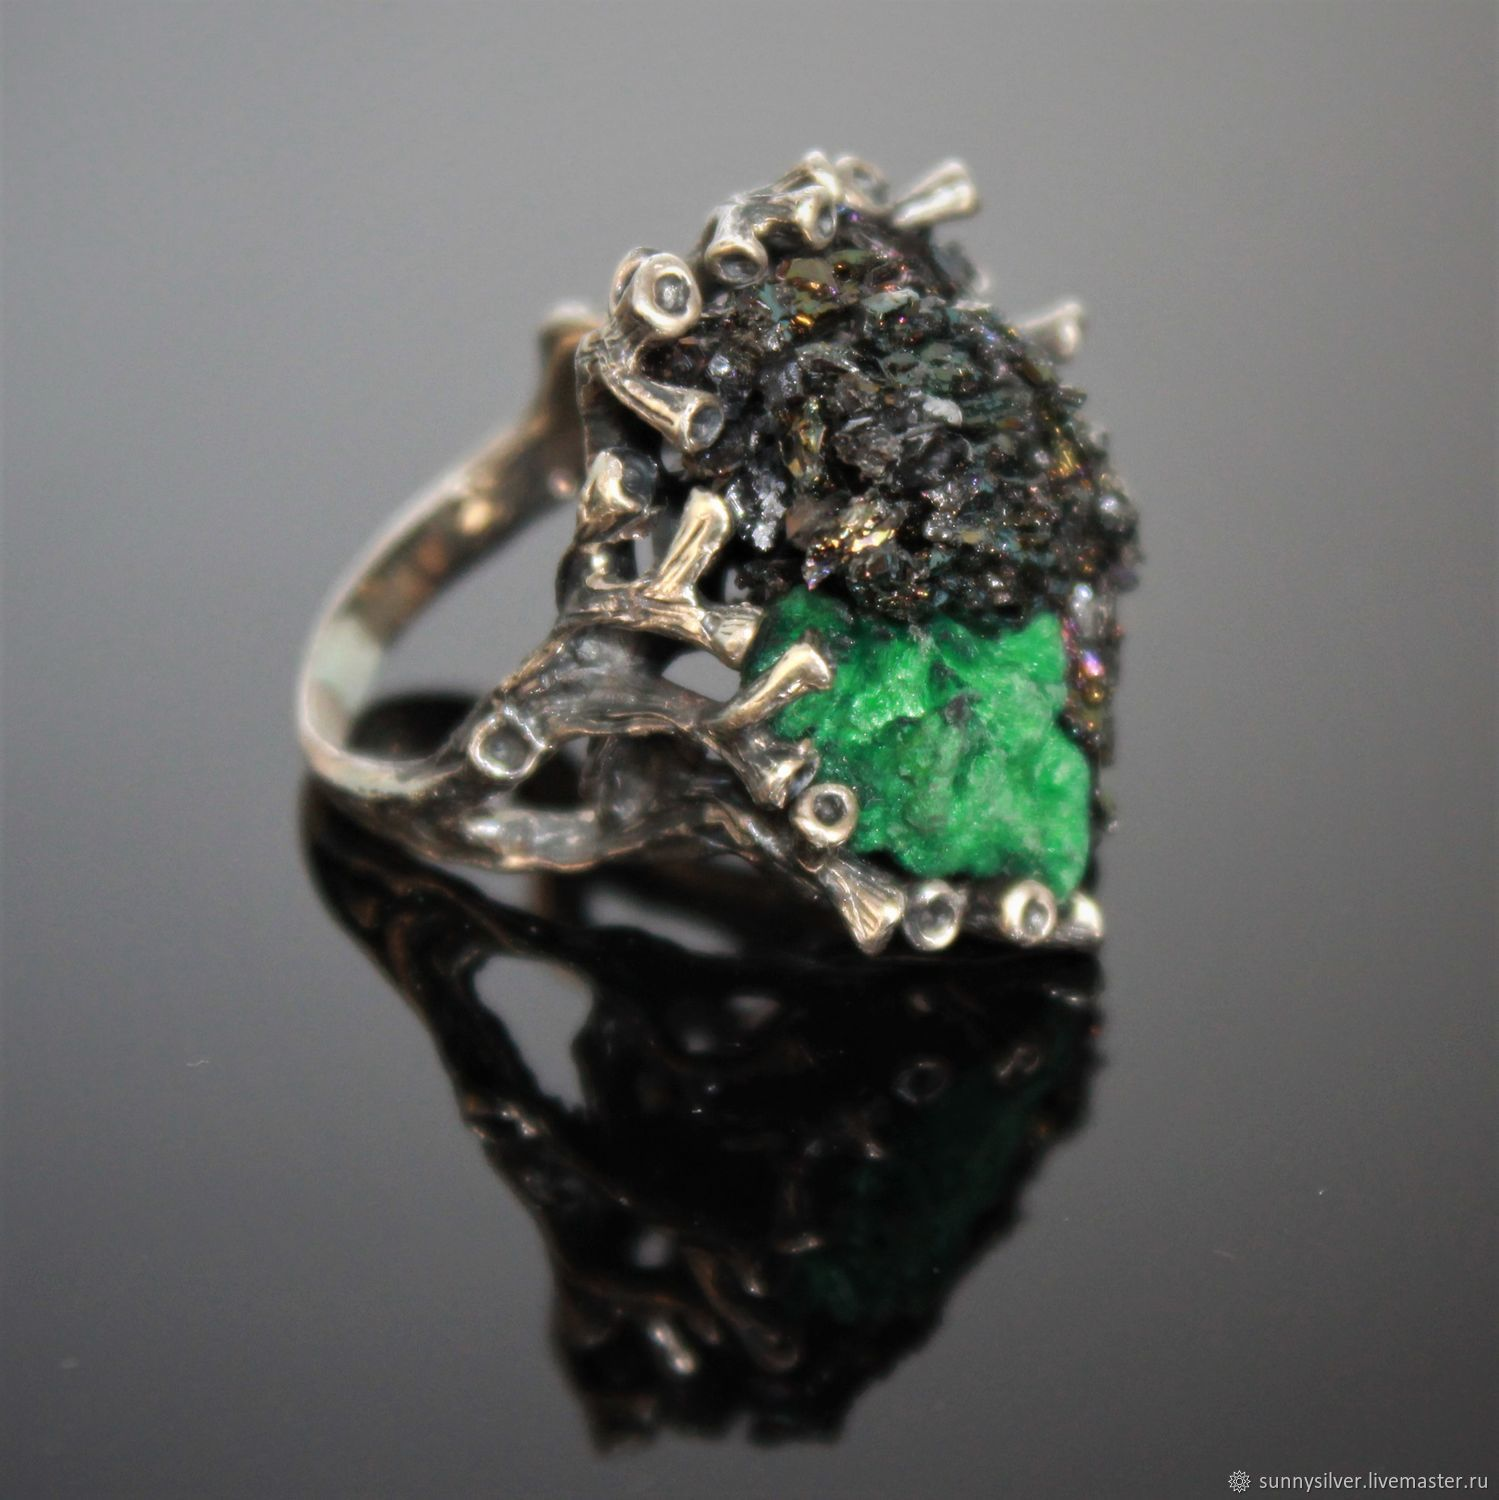 Nikolet ring in silver with malachite and carborundum, Rings, Yerevan,  Фото №1